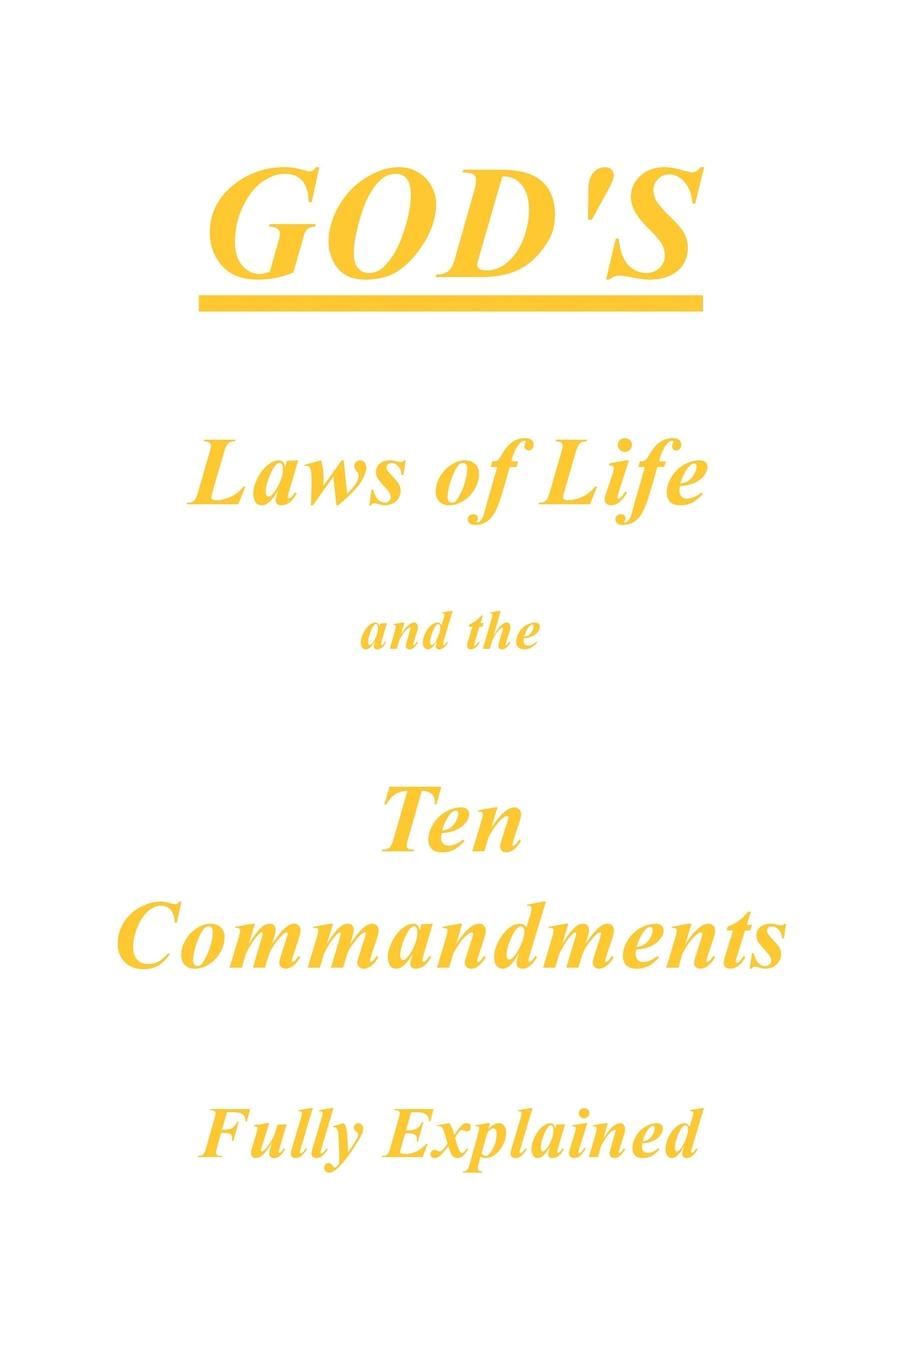 M. l'abbé Trochon God.s Laws of Life and the Ten Commandments Fully Explained ten commandments of working in a hostile environment